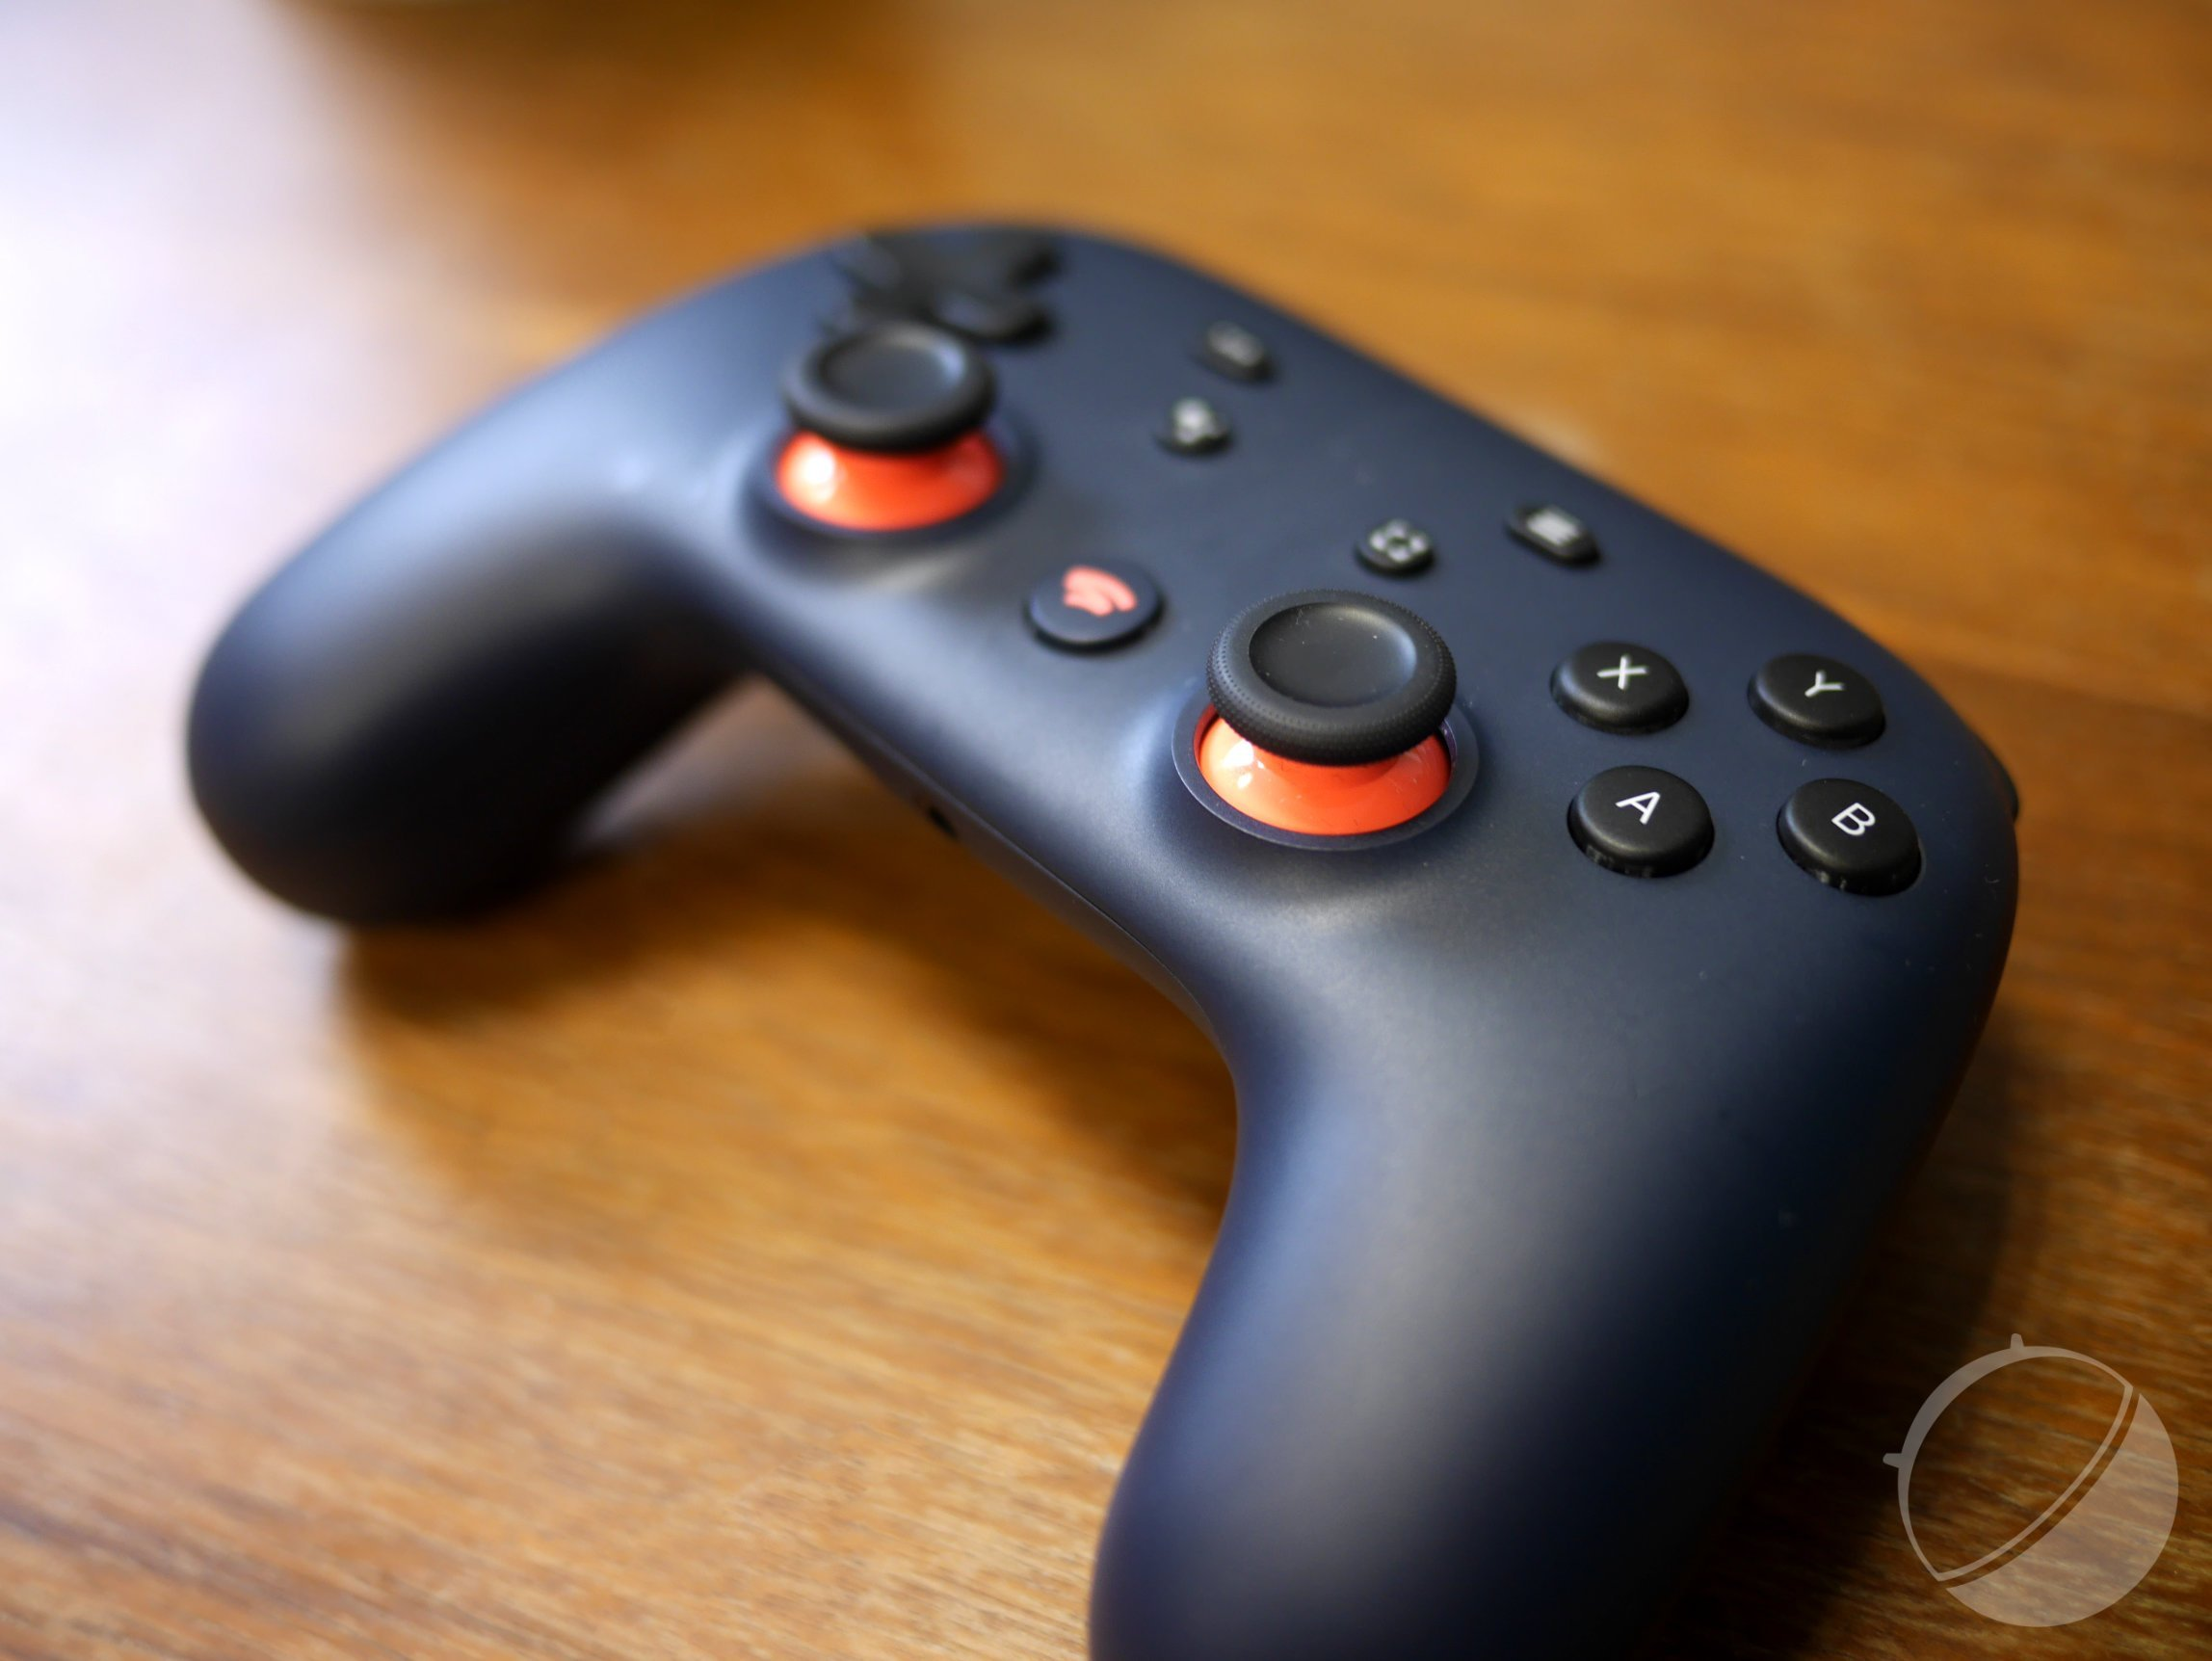 Stadia sur une tablette e-ink, c'est possible et relativement fluide